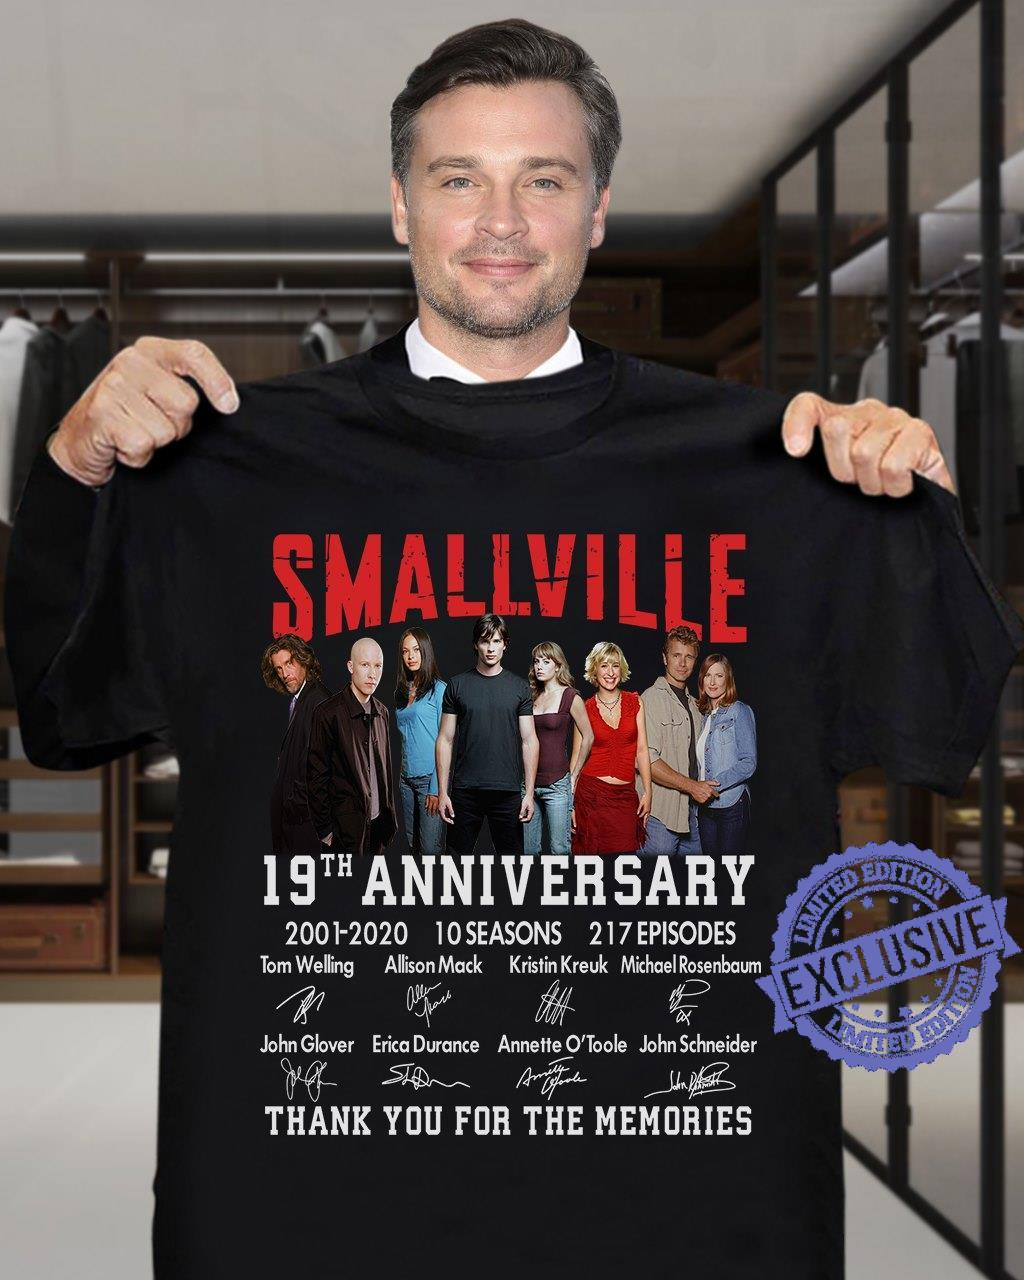 Smallville 19th anniversary 2001 2020 10 seasons 217 episodes thank you for the memories shirt